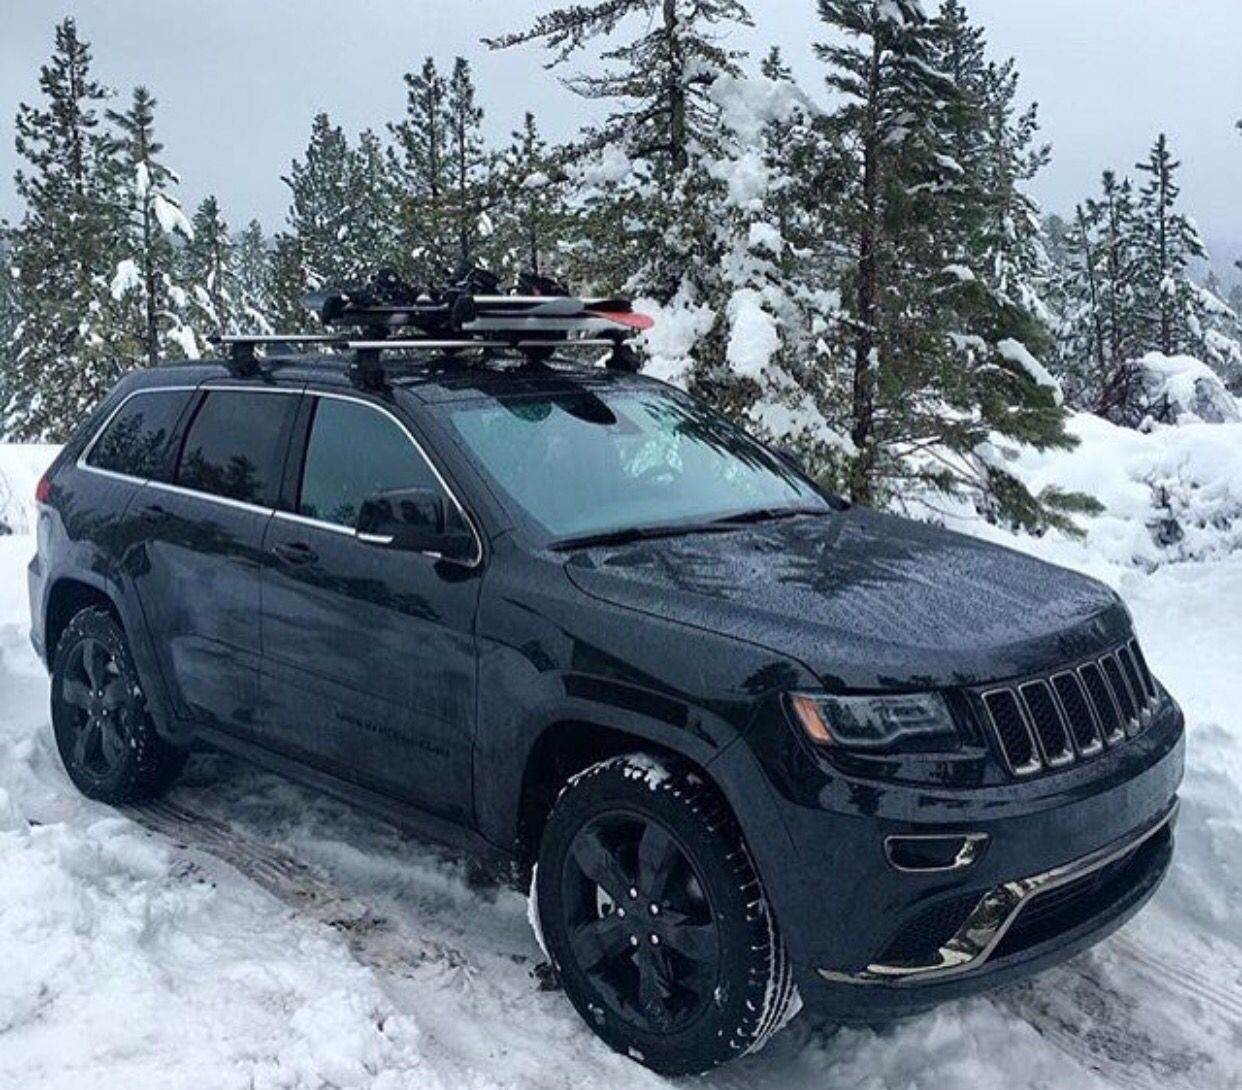 Playing In The Snow Jeep Offroad Adventure Explore Challenge